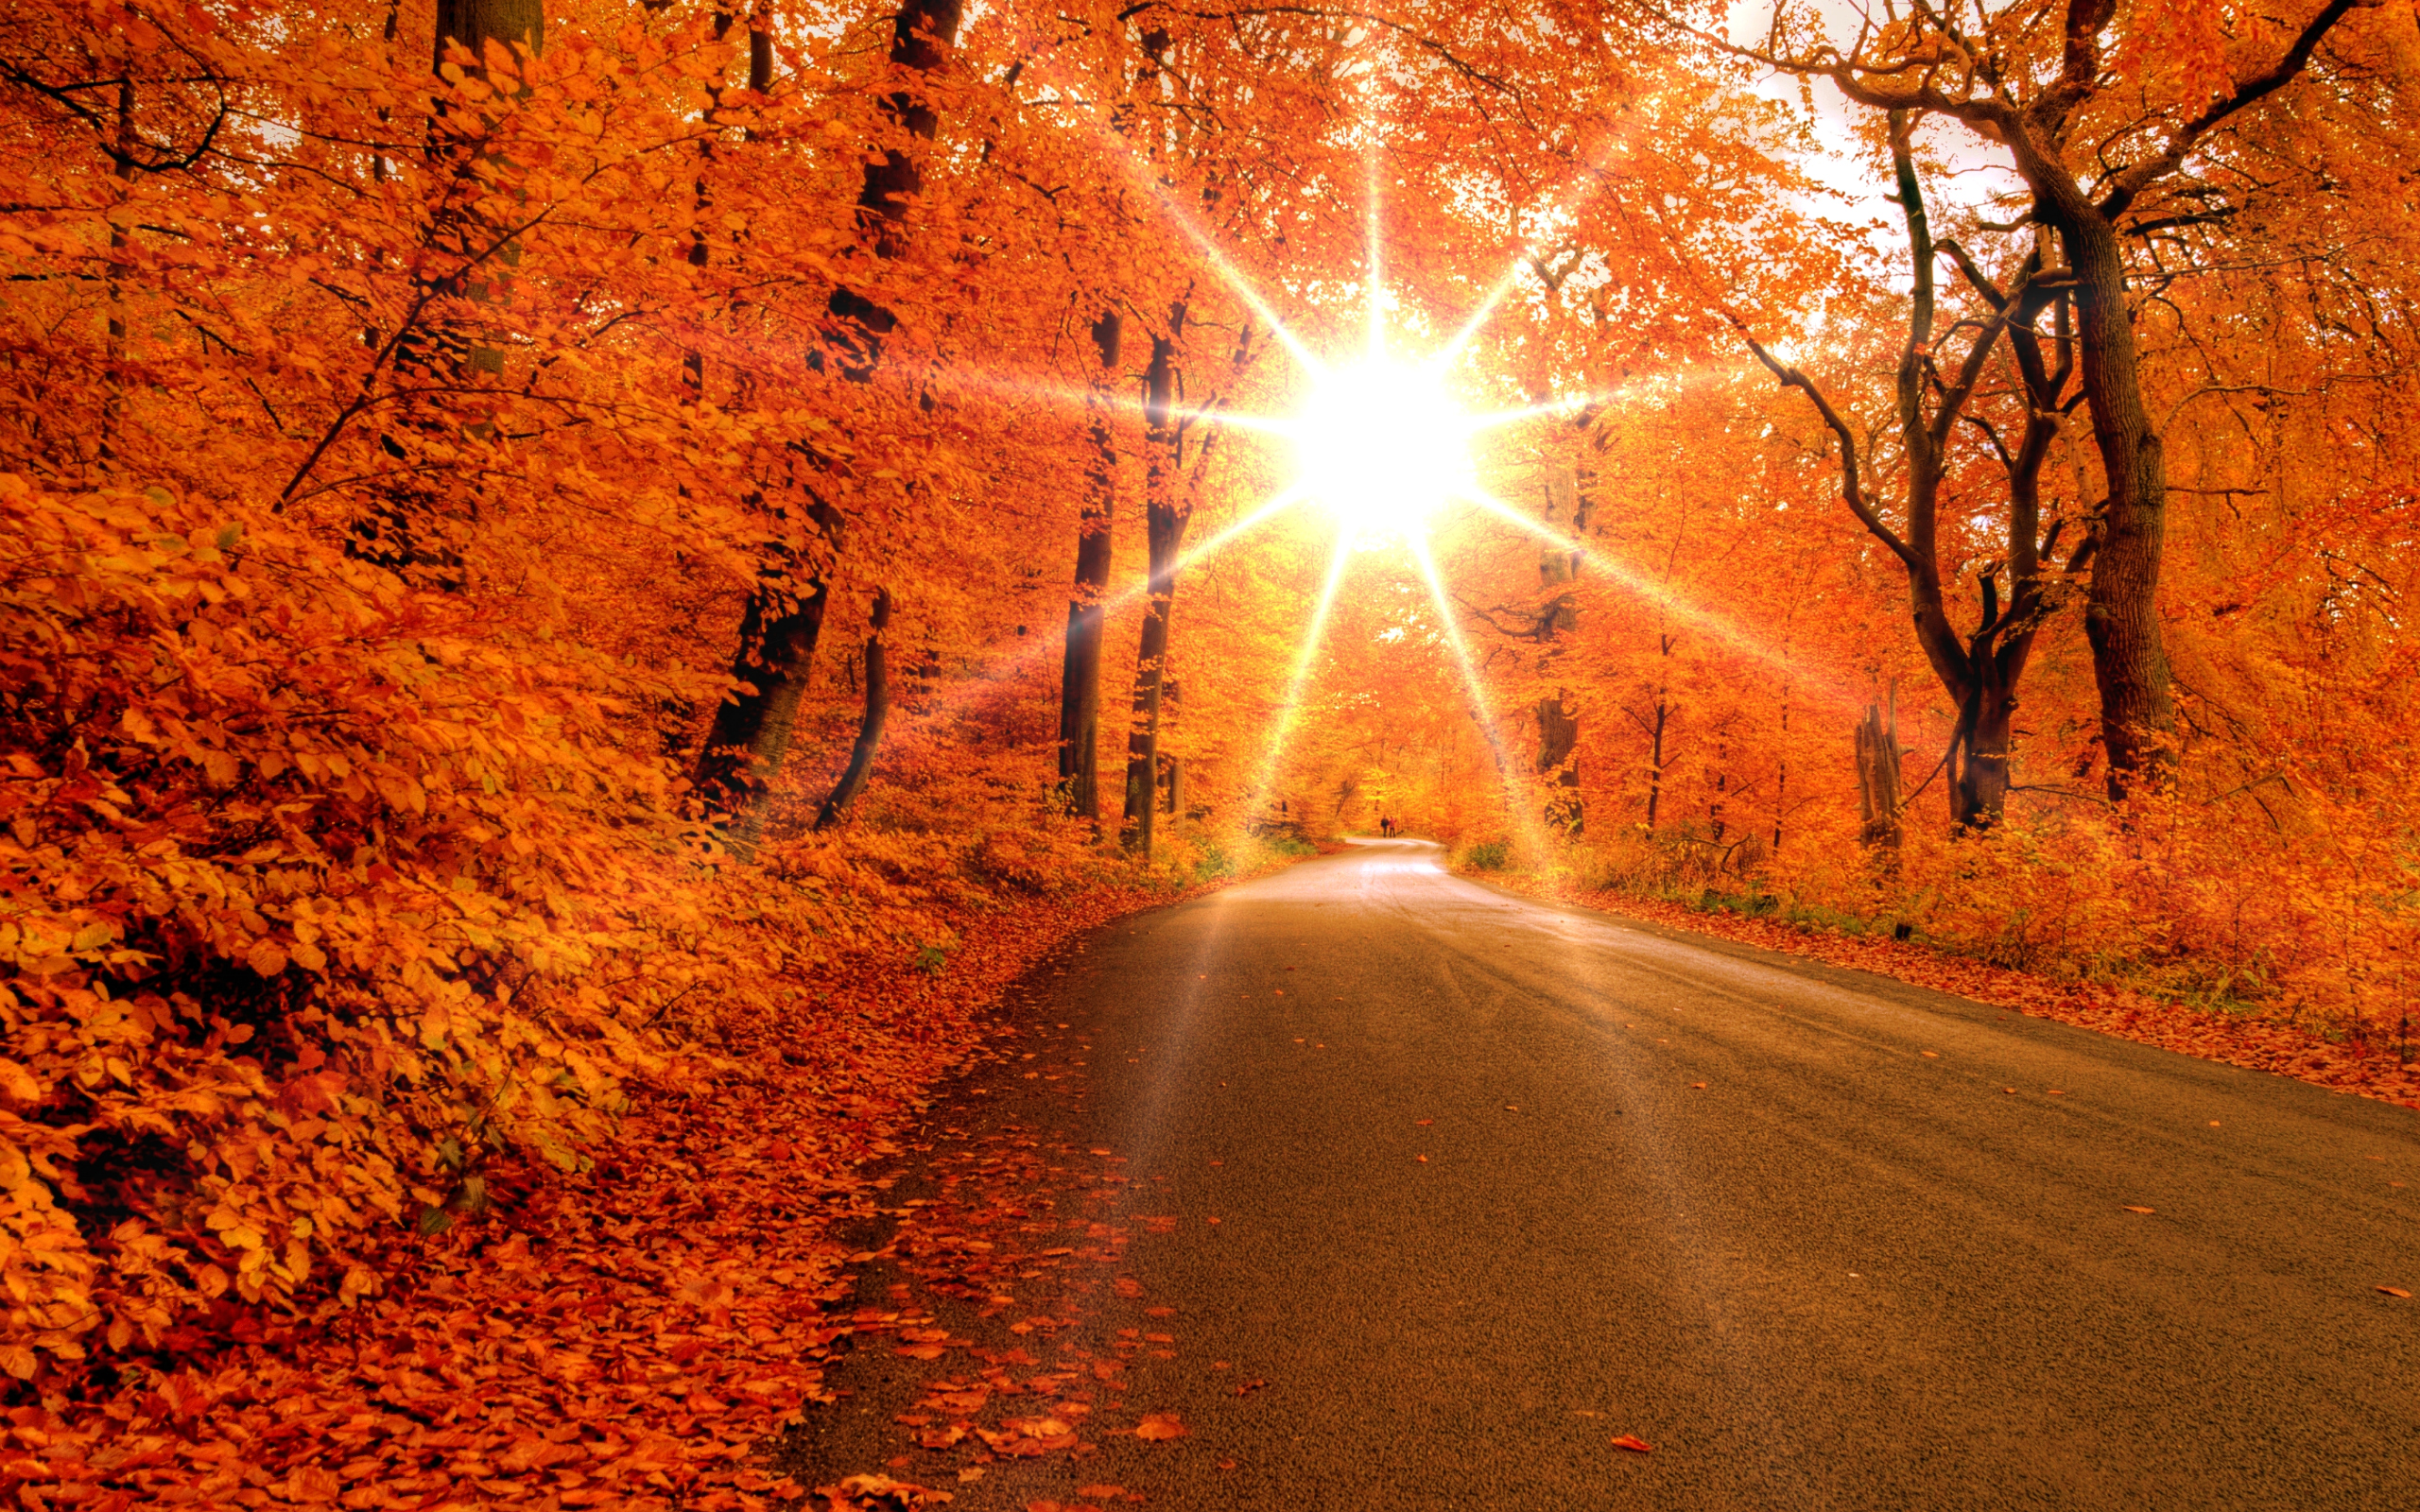 Autumn road wallpapers Autumn road stock photos 2560x1600